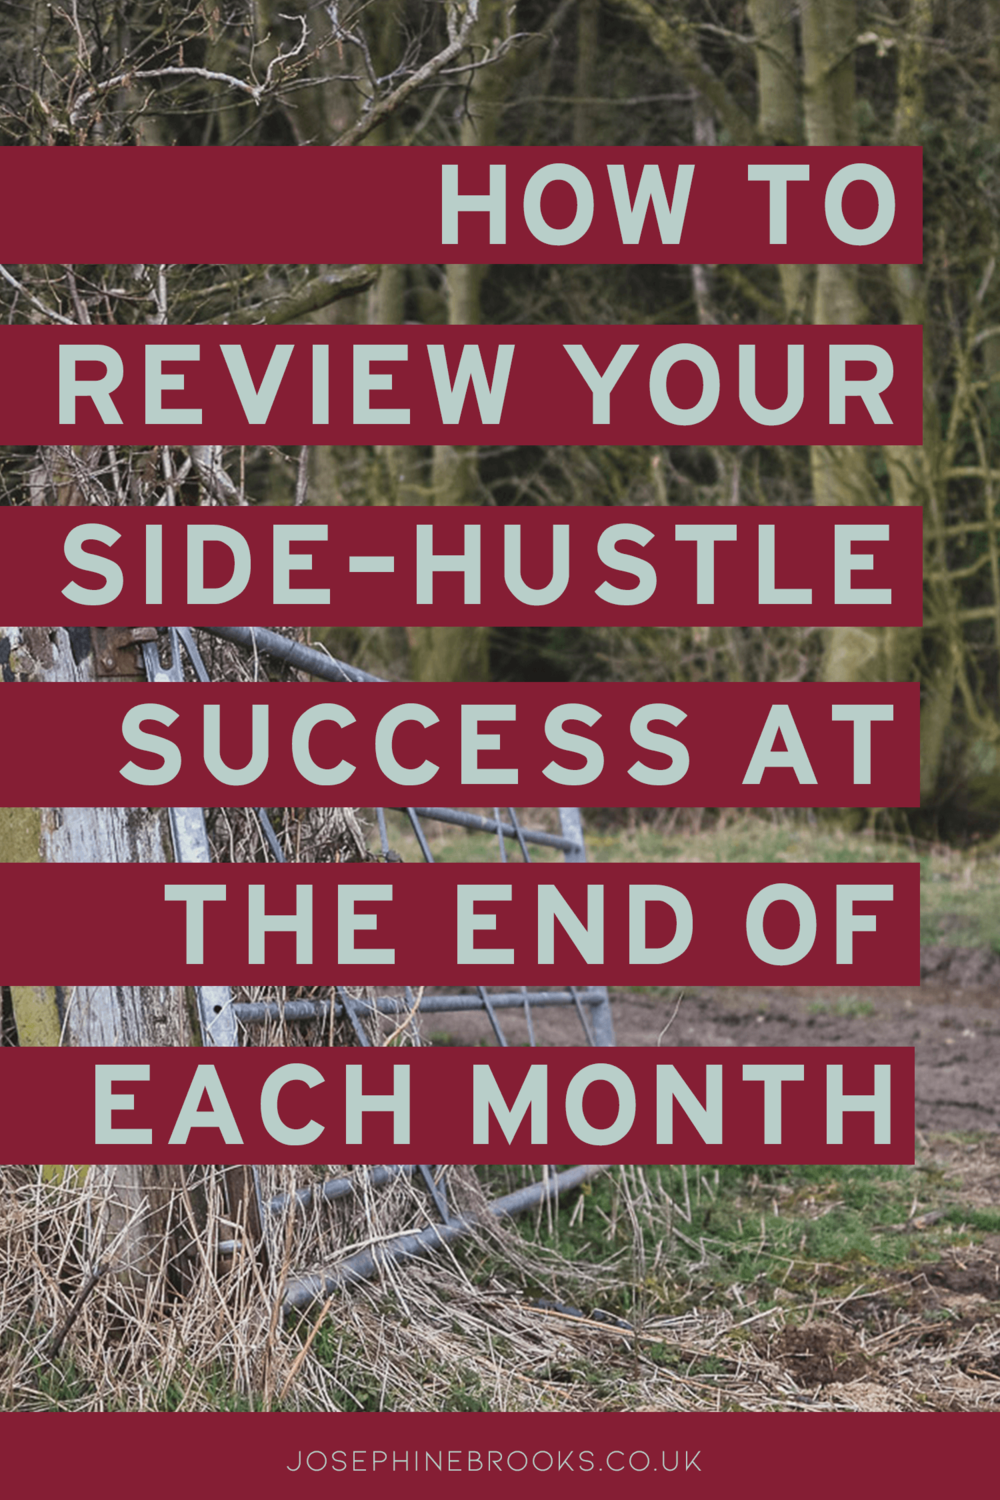 How to review your side hustle success at the end of each month, Recording side-hustle progress, Reviewing a small business